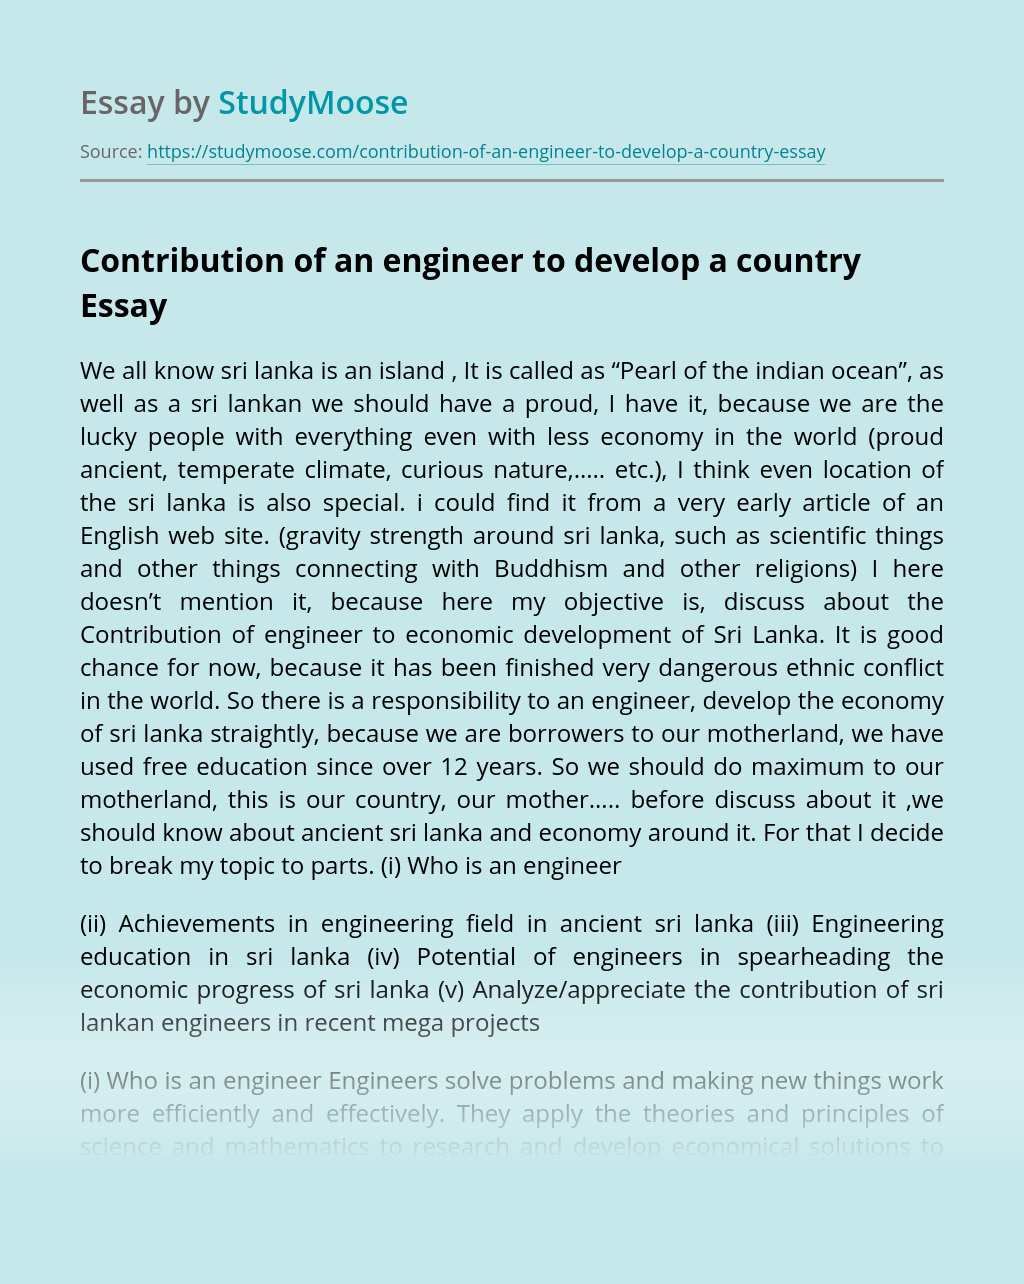 Contribution of an engineer to develop a country